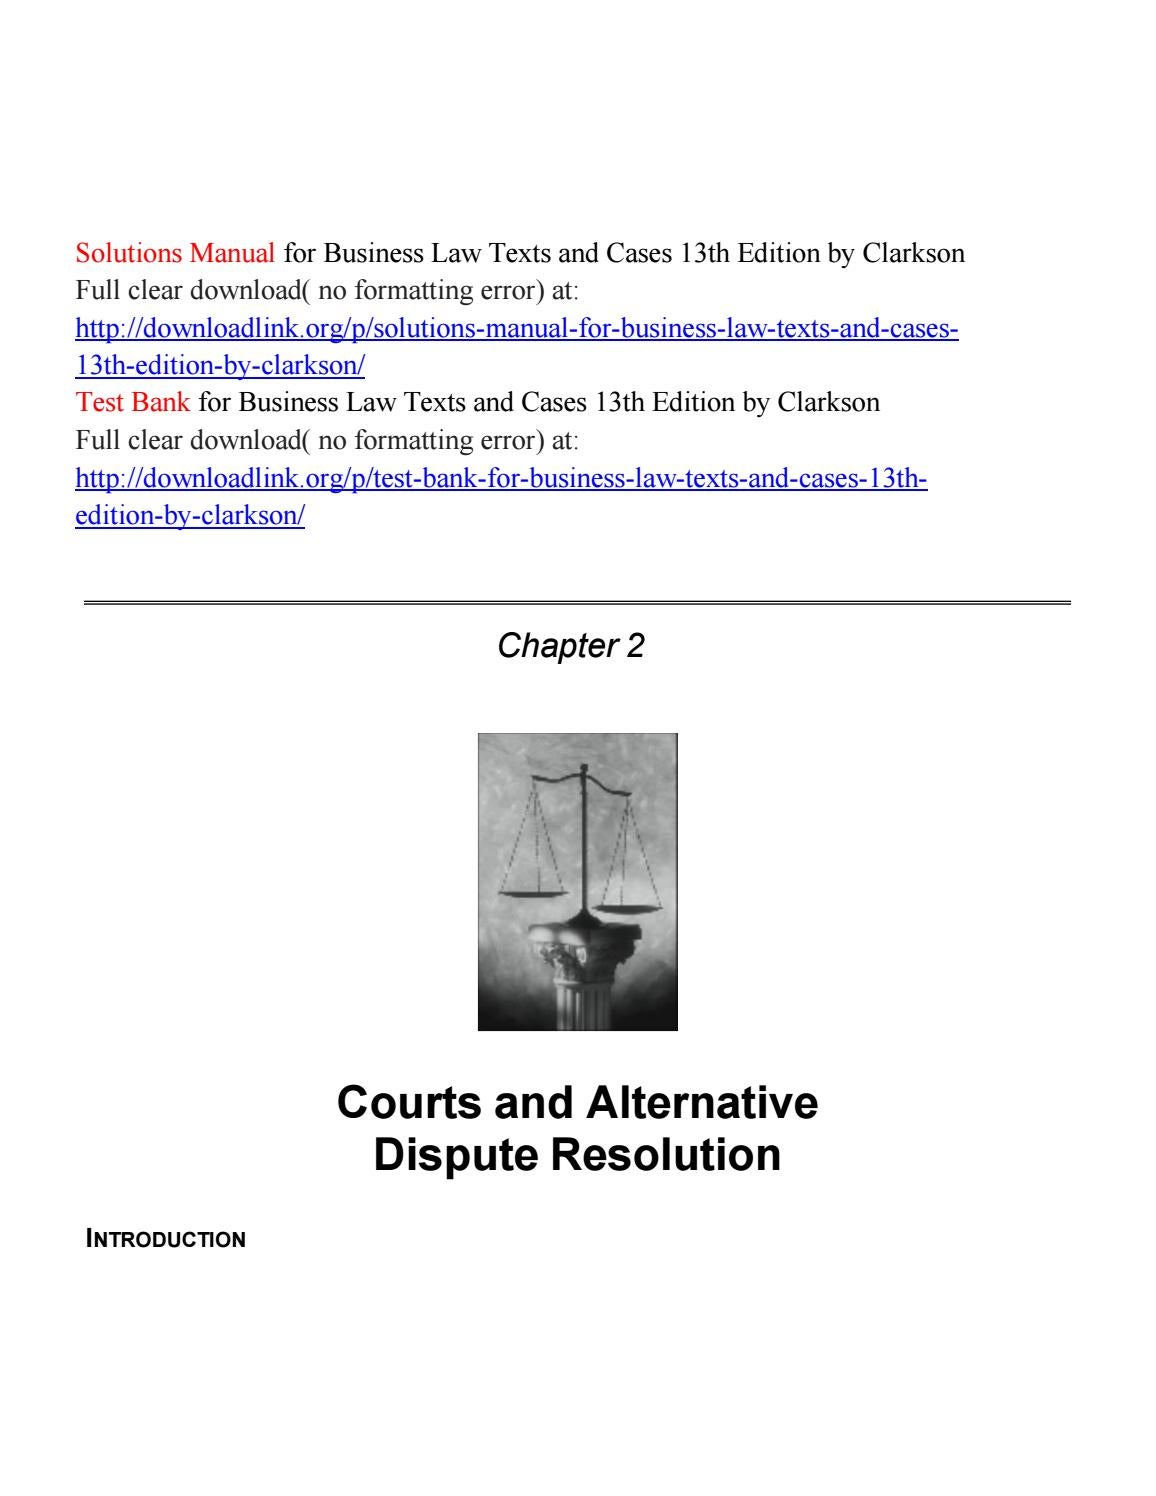 Solutions Manual for Business Law Texts and Cases 13th Edition by Clarkson  by CooKi5472 - issuu